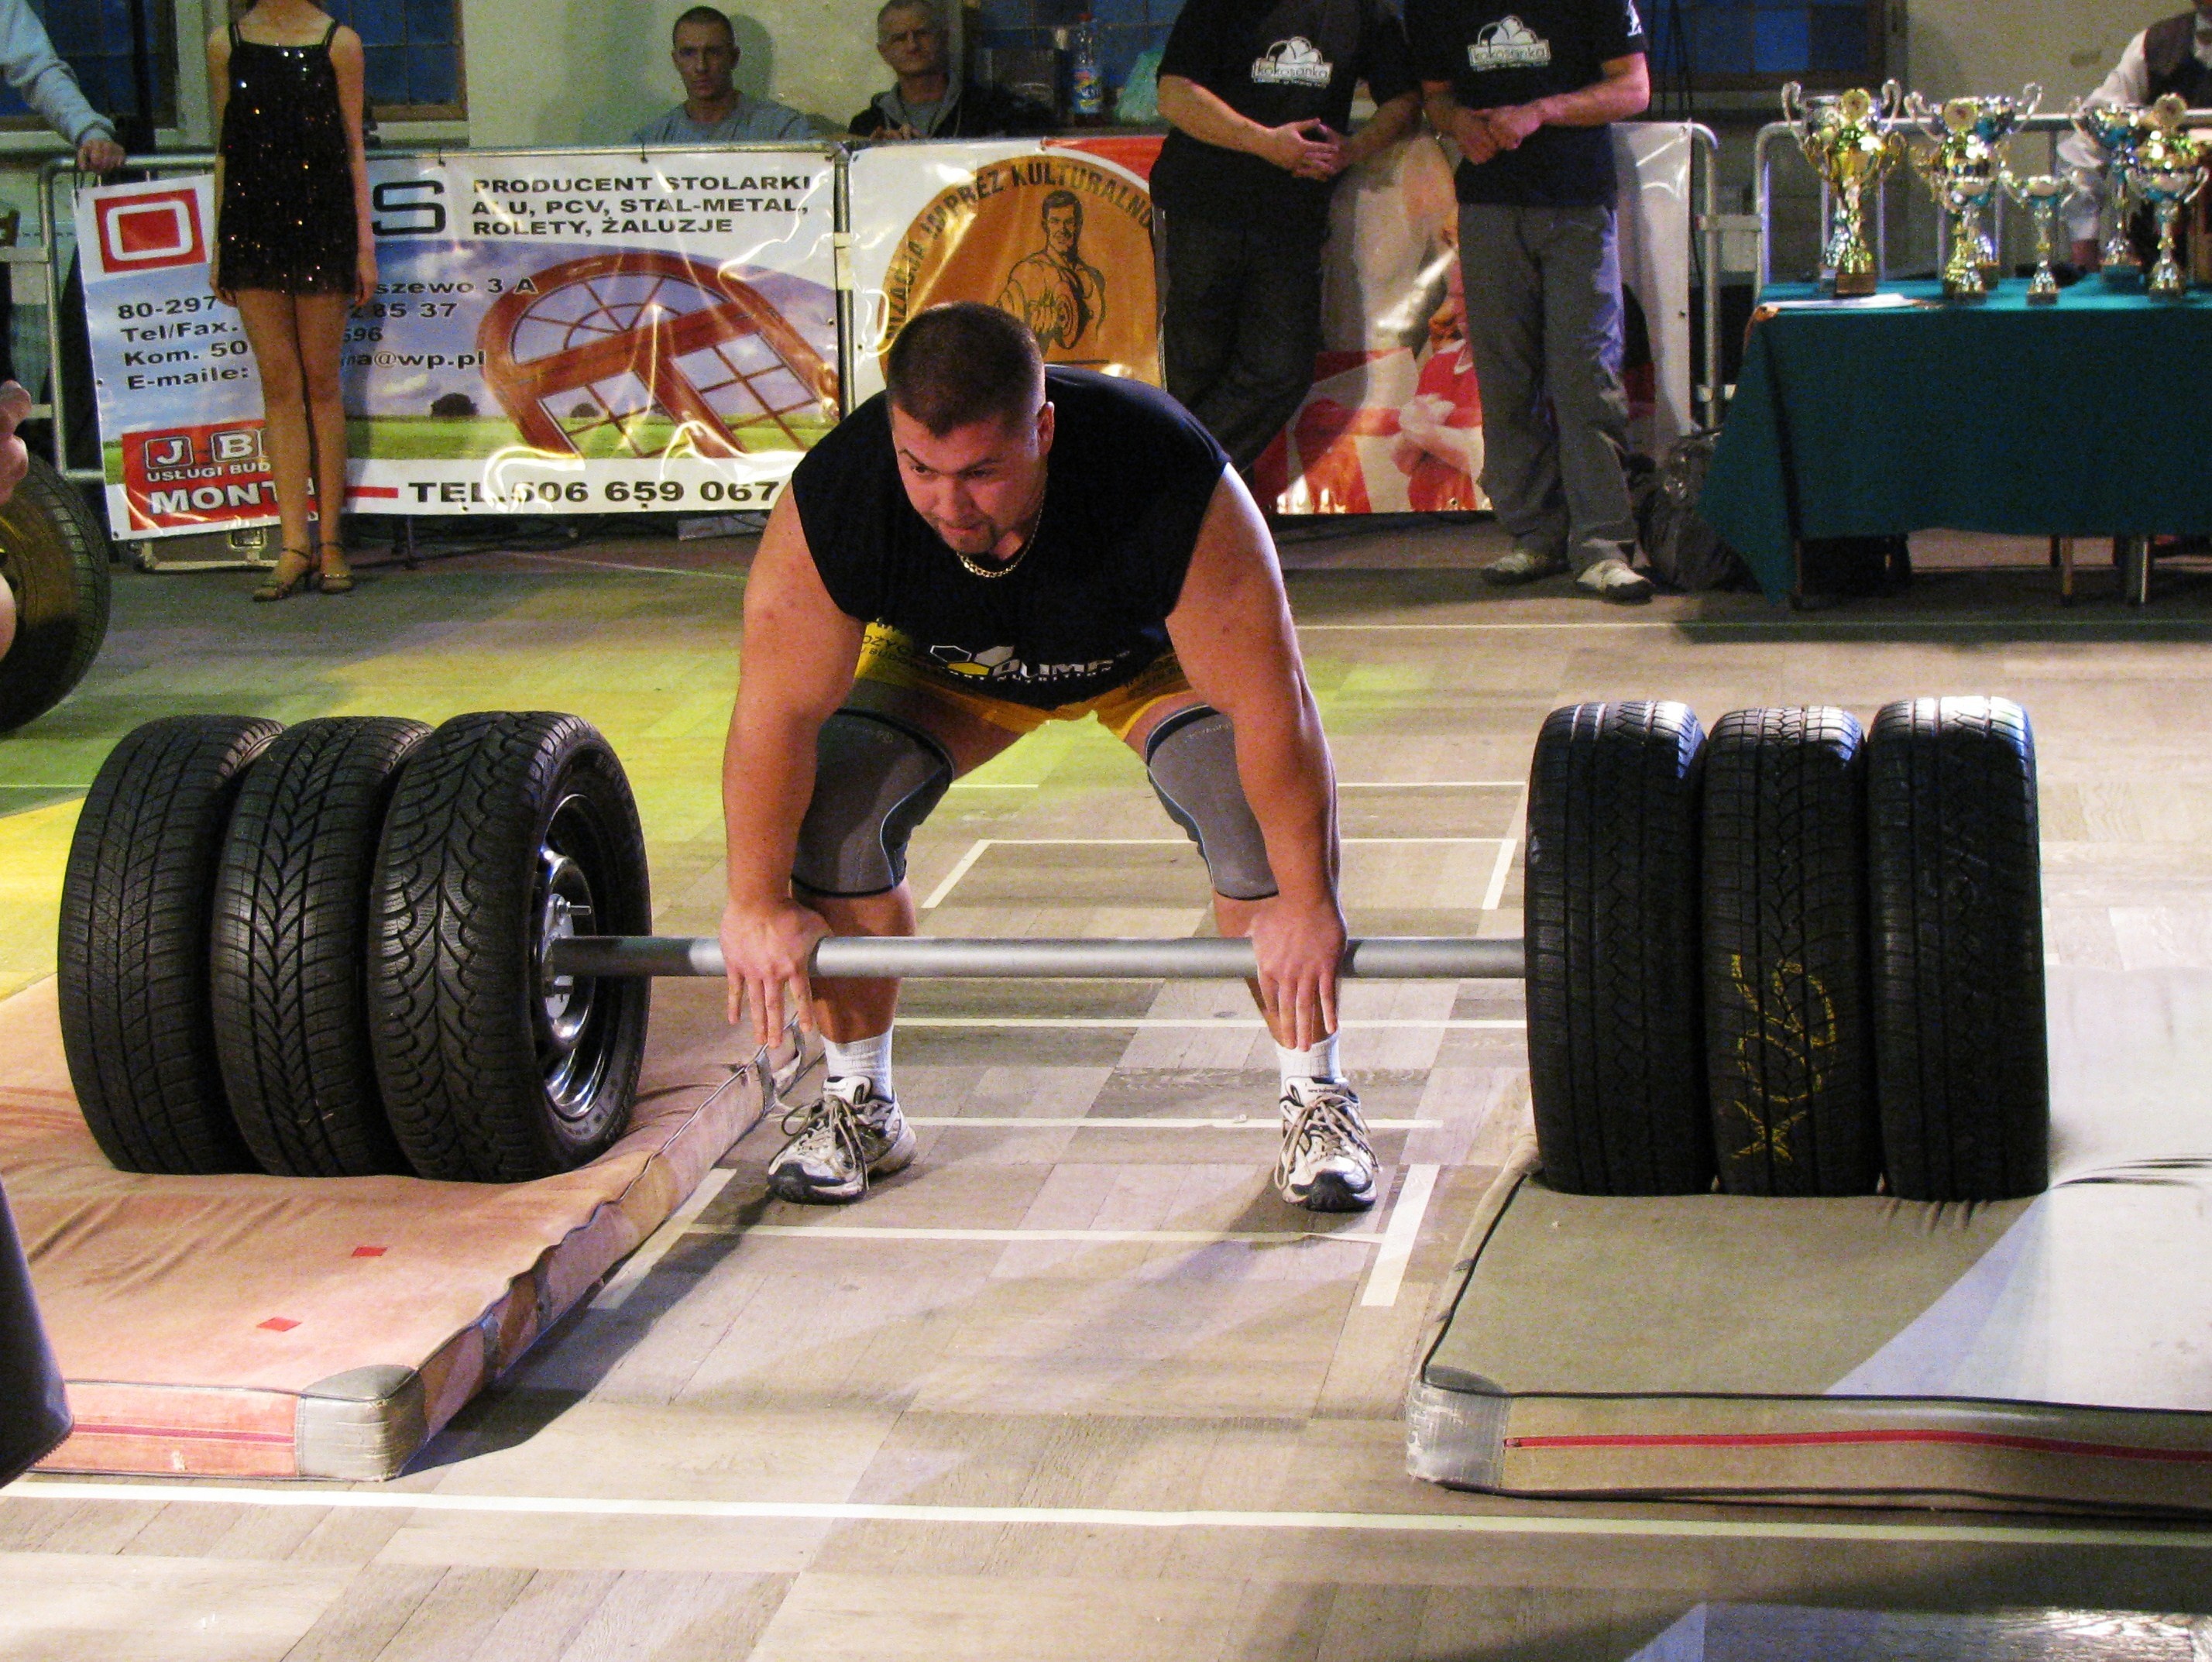 axle barbell during the deadlift improves grip strength